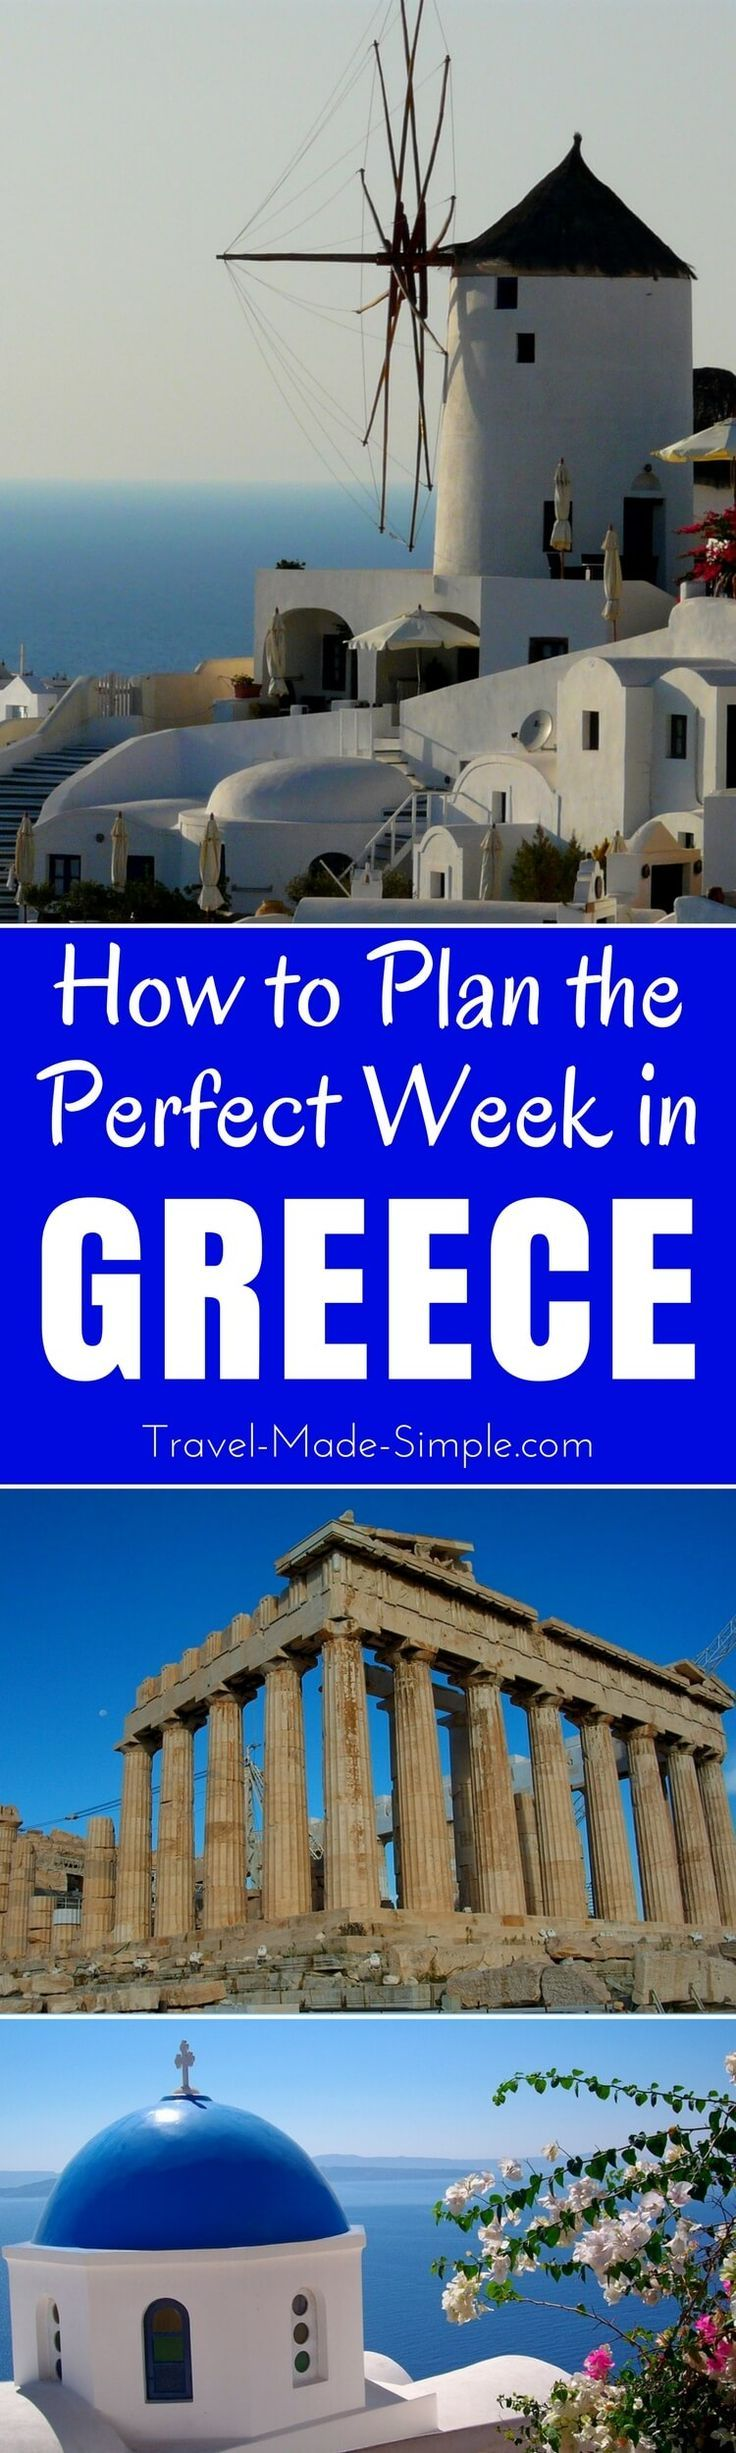 Here's how to make the most of one week in Greece. From the ruins to the islands, plan a trip to Greece with our Greece itinerary and enjoy your dream vacation! | one week in Greece | two weeks in Greece | travel to Greece | Greece travel planning tips | Greece tourist attractions | travel in Greece